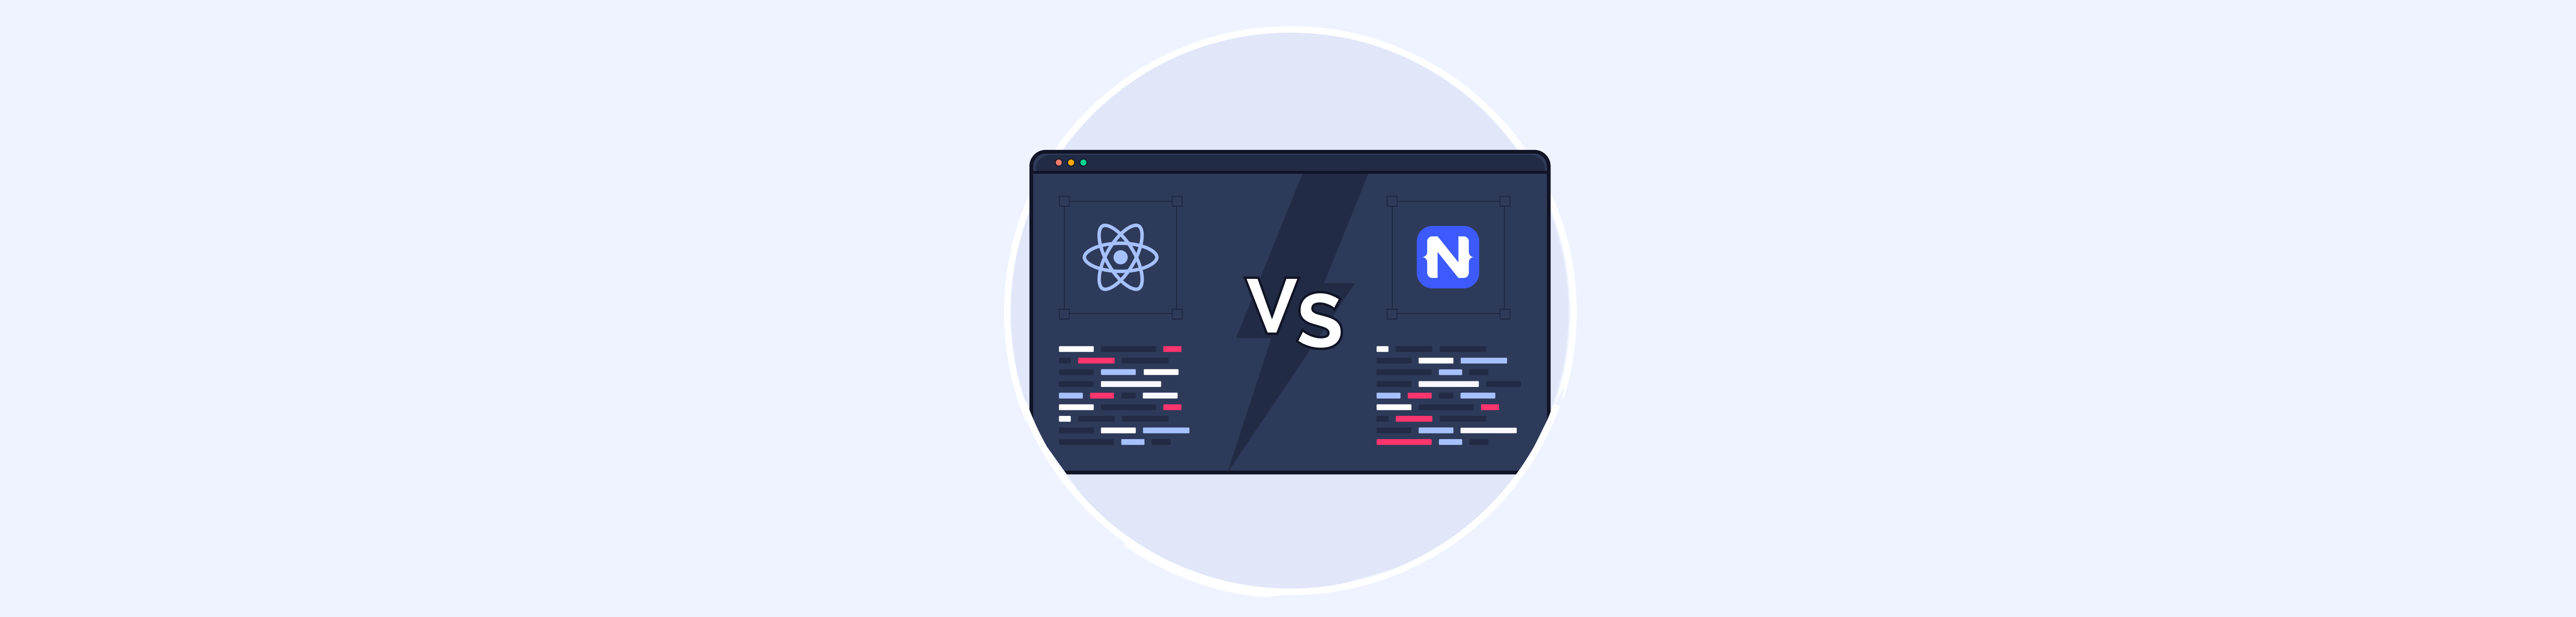 NativeScript vs React Native: which one to choose for Native app development in 2021